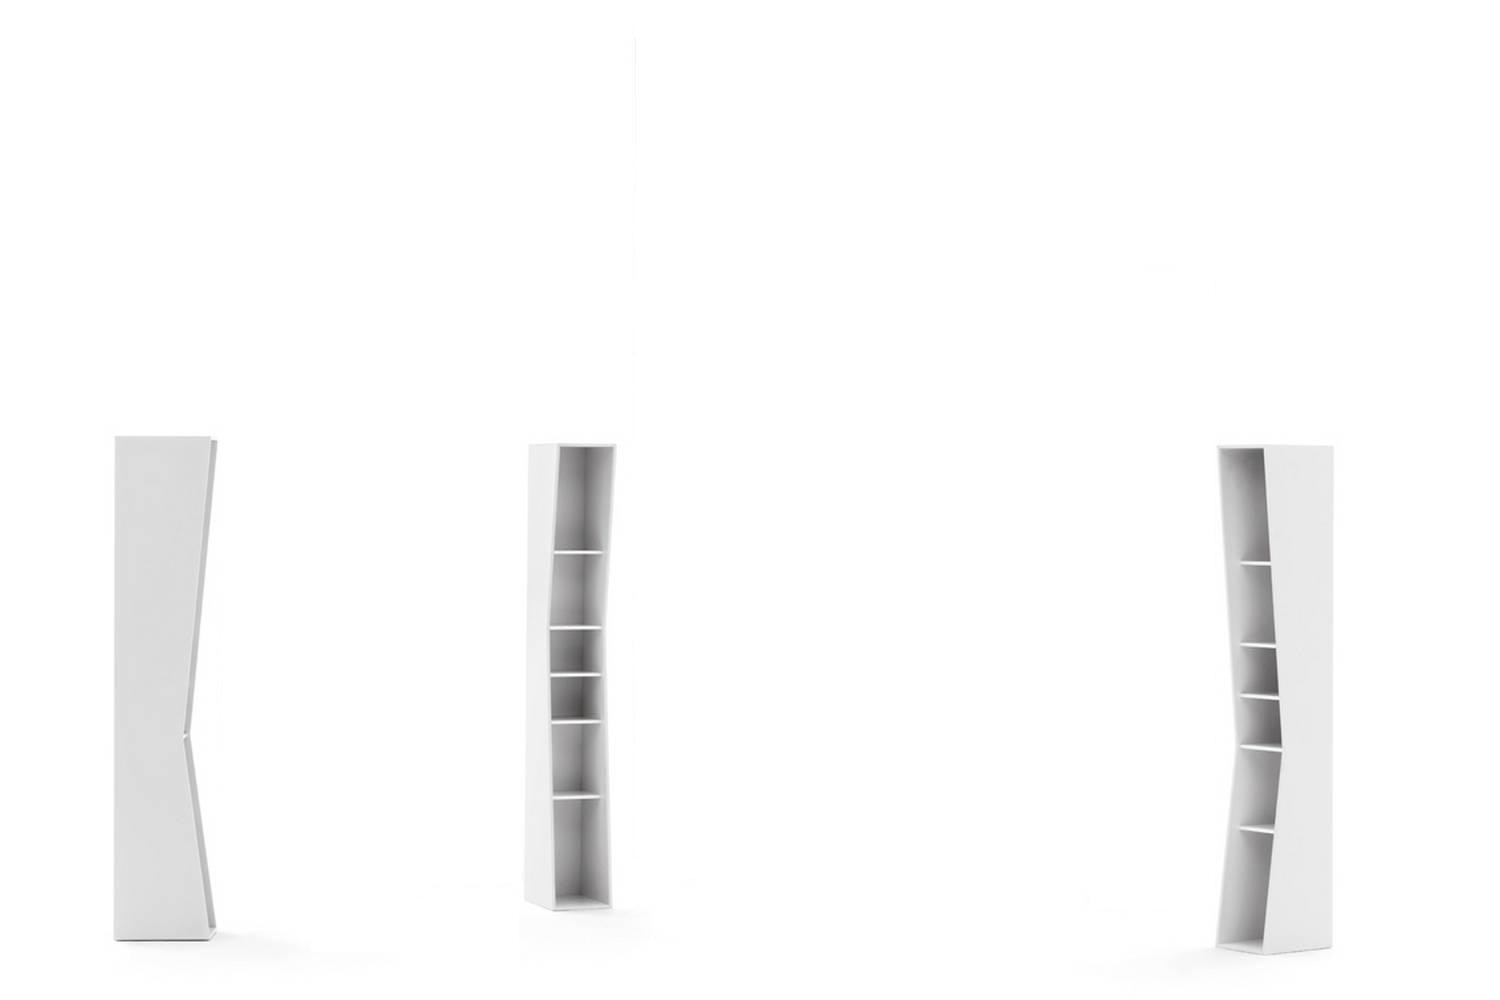 Uptown 5 Shelves Bookshelf by Lapo Ciatti for Opinion Ciatti